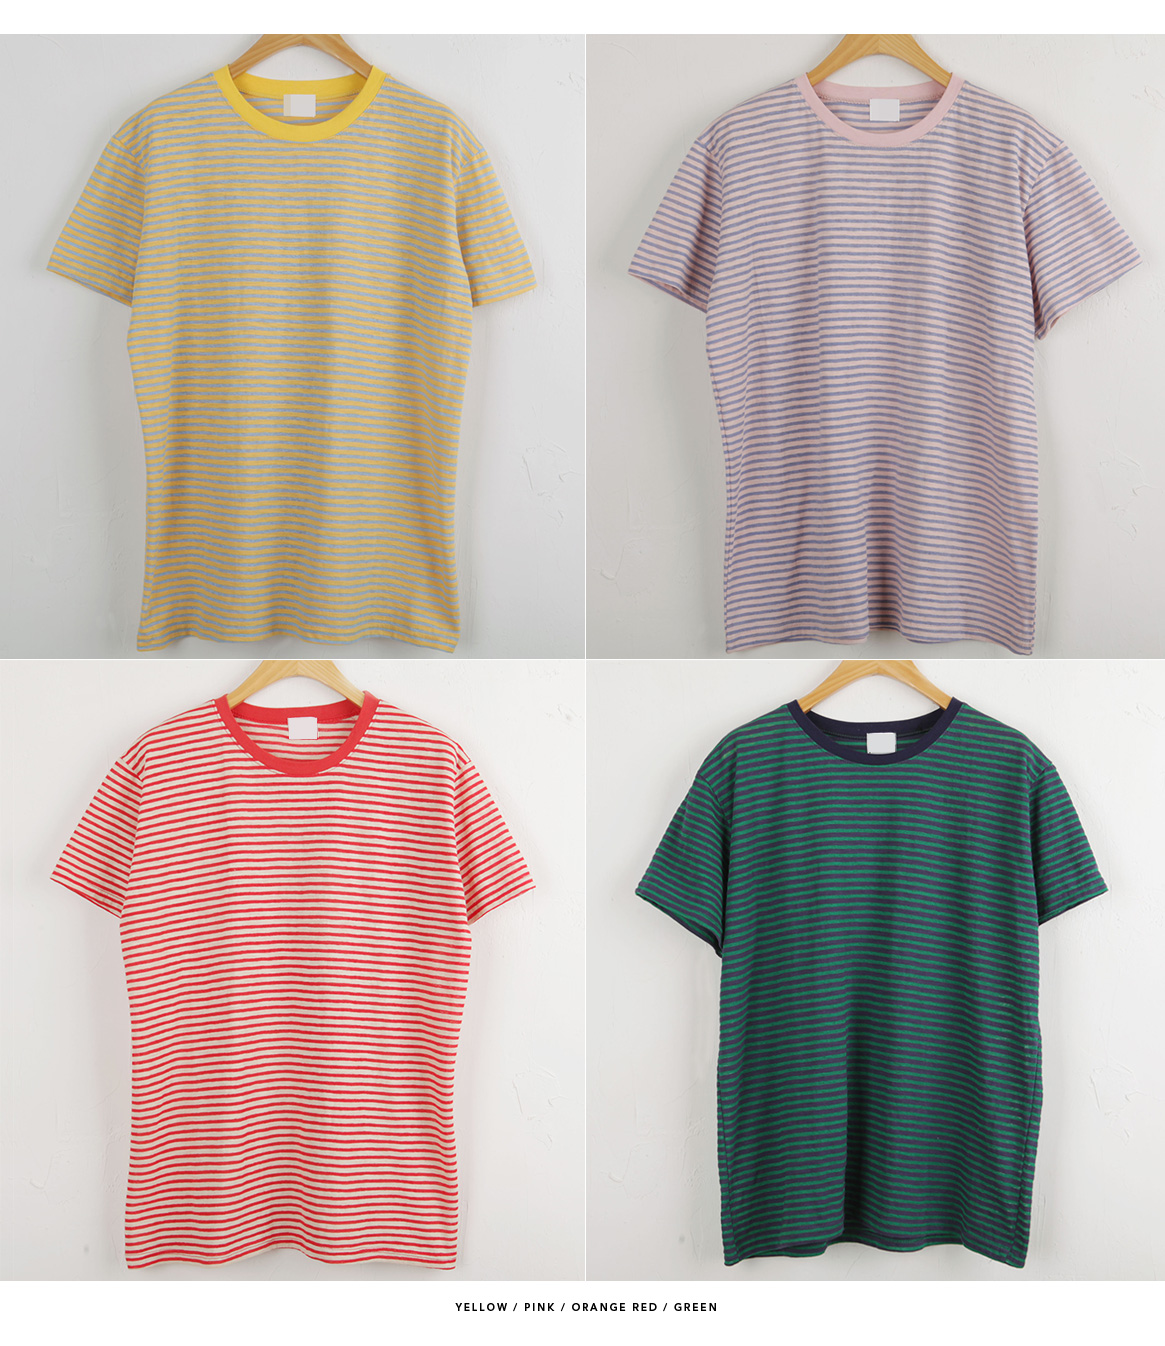 Good material and pretty fit !! Steady love striped tee